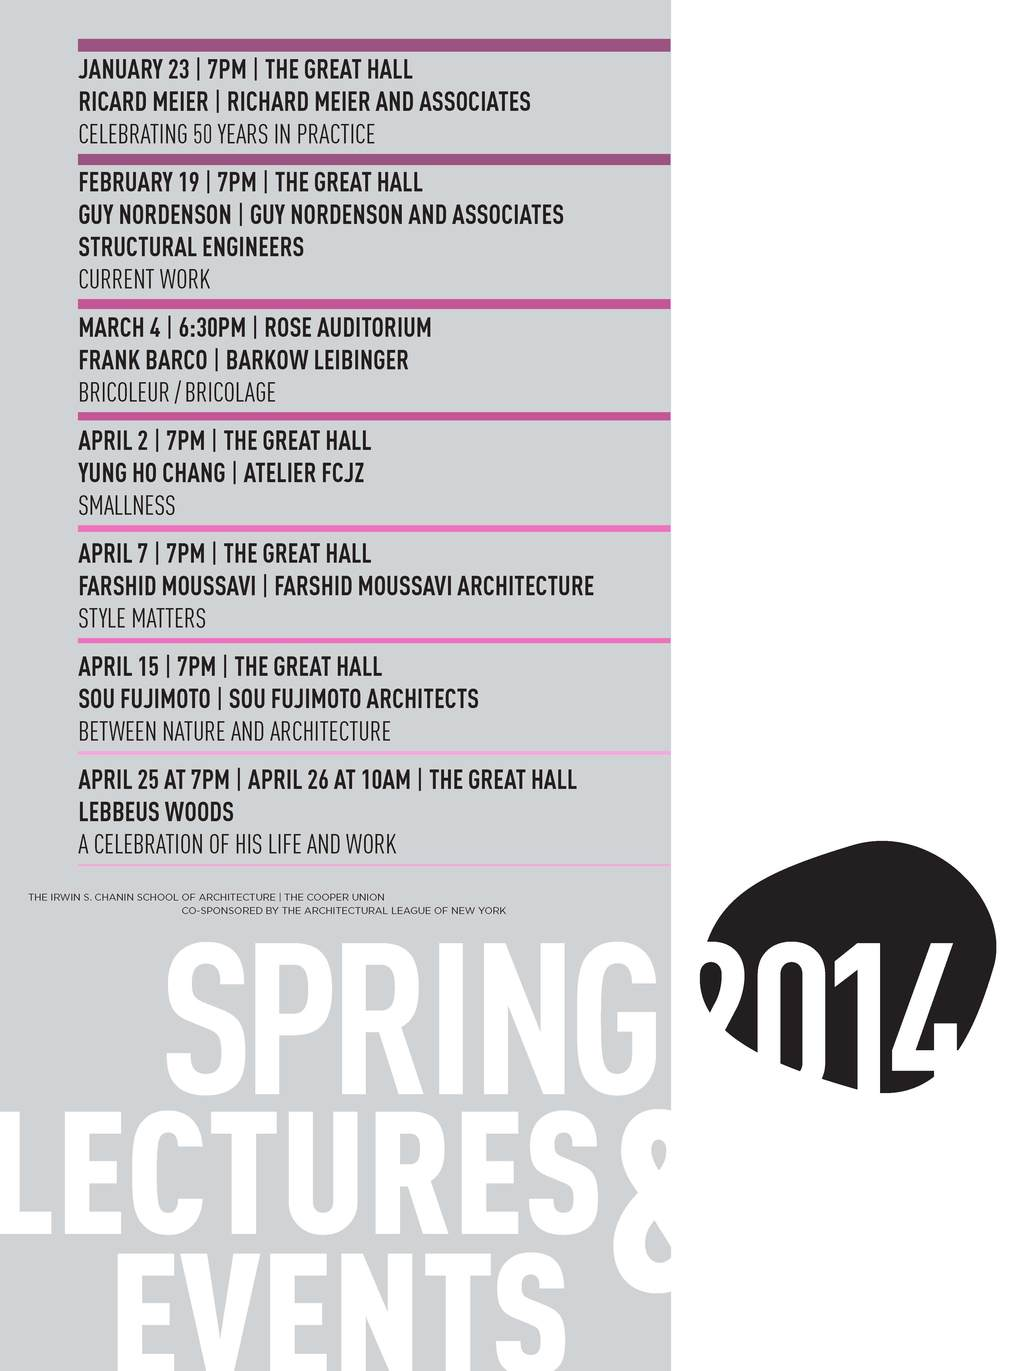 Spring 14 Lectures and Events. Image courtesy of The Irwin S. Chanin School of Architecture at Cooper Union.